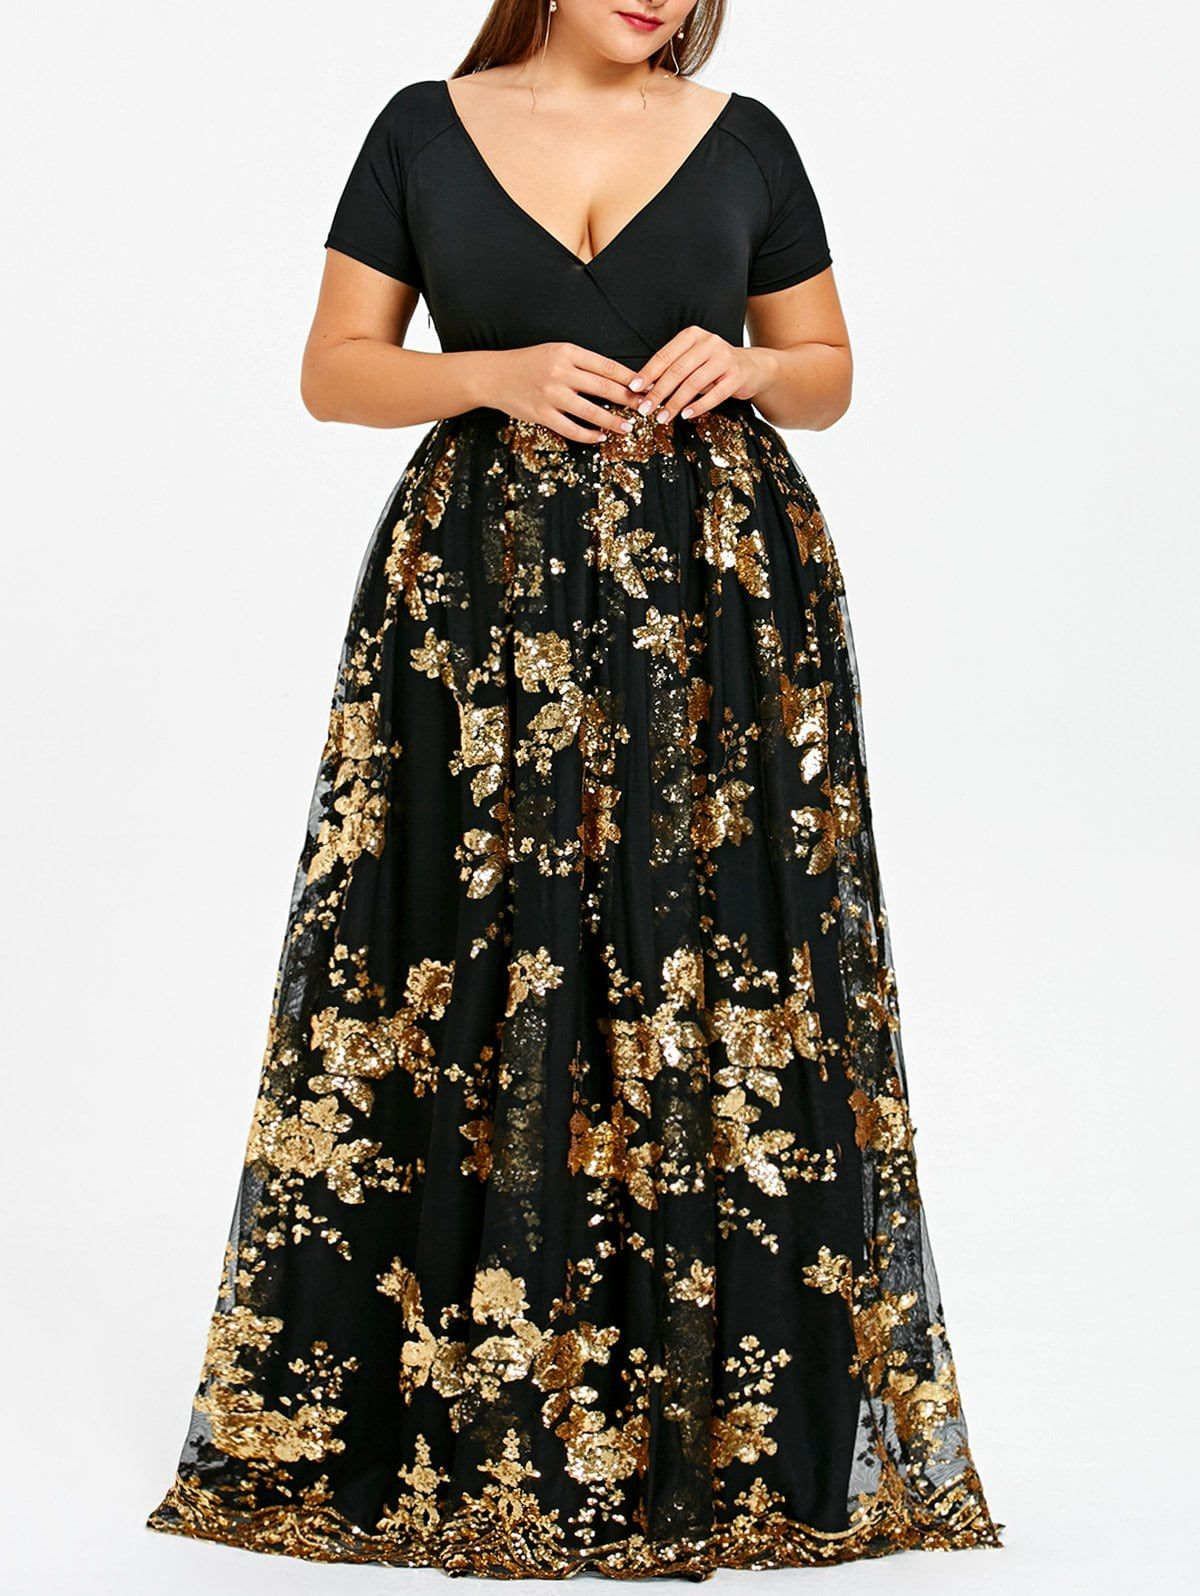 Plus Size Floral Sequined Maxi Prom Dress Maxi Dress Prom Sparkly Maxi Dress Maxi Dress [ 1596 x 1200 Pixel ]